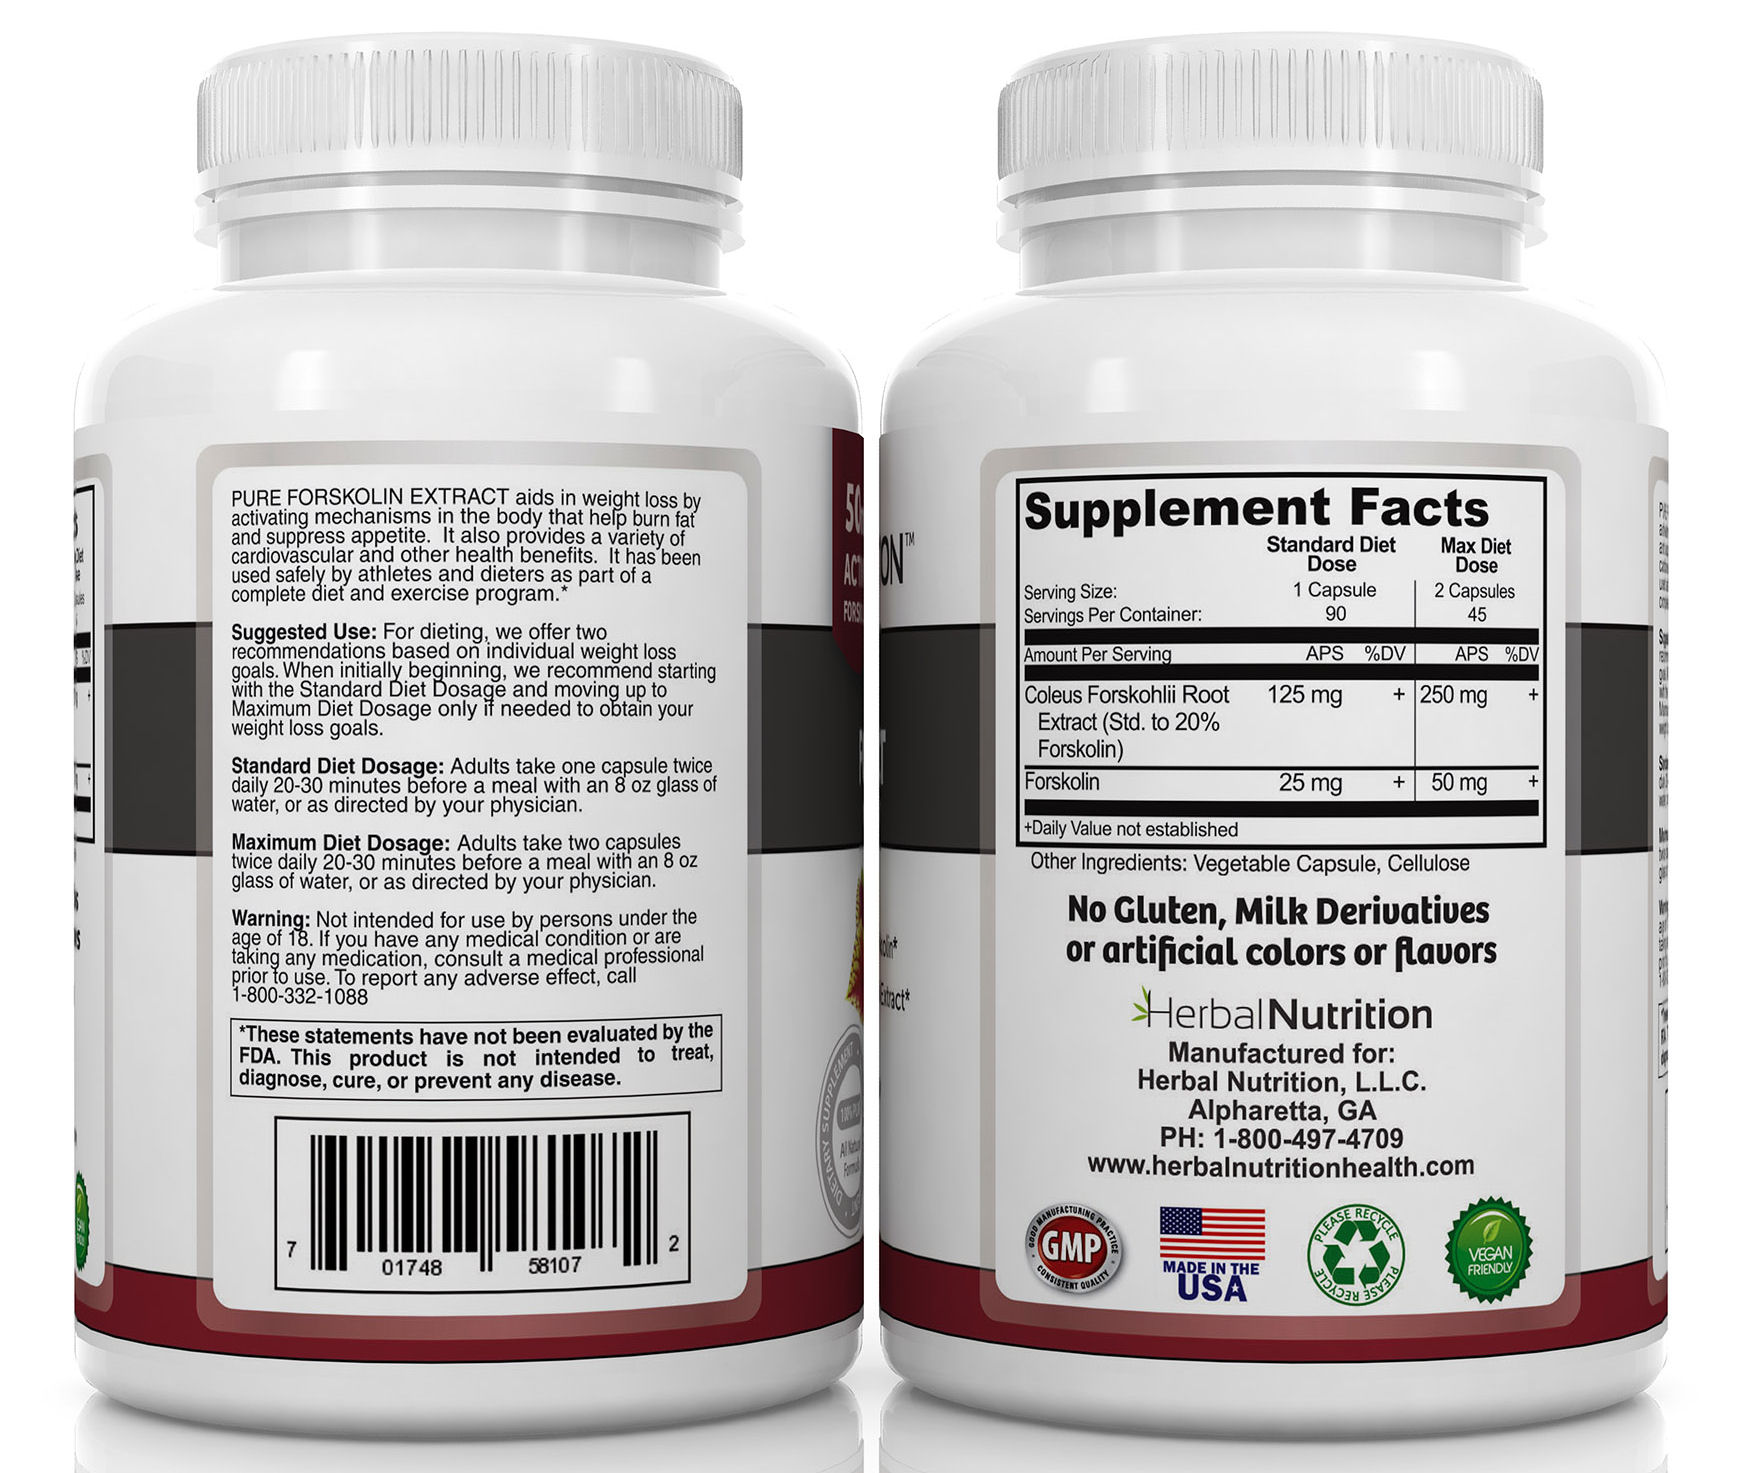 Forskolin Supplement Facts